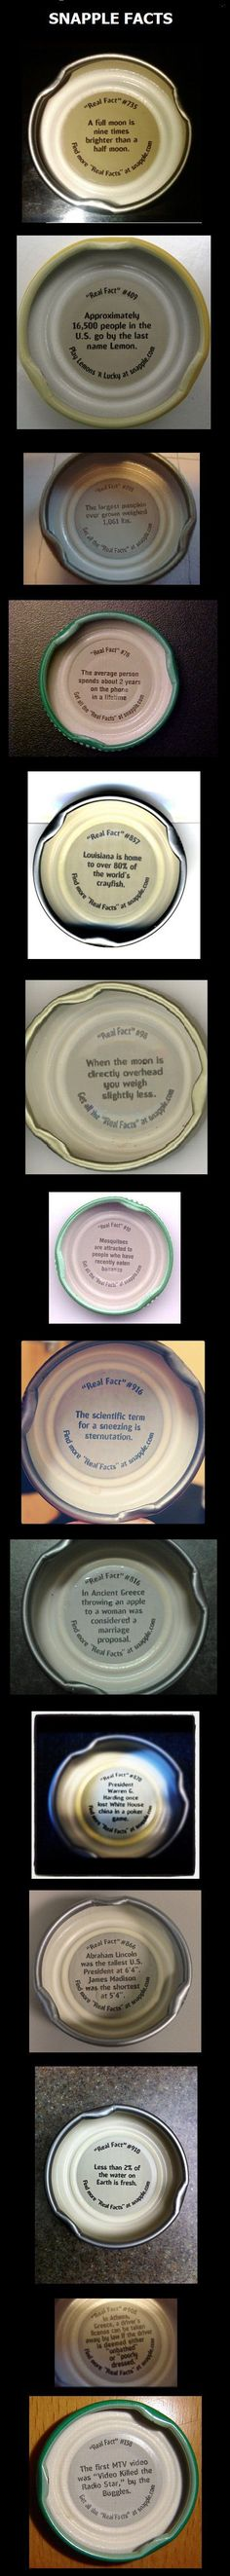 Snapple facts  // funny pictures - funny photos - funny images - funny pics - funny quotes - #lol #humor #funnypictures